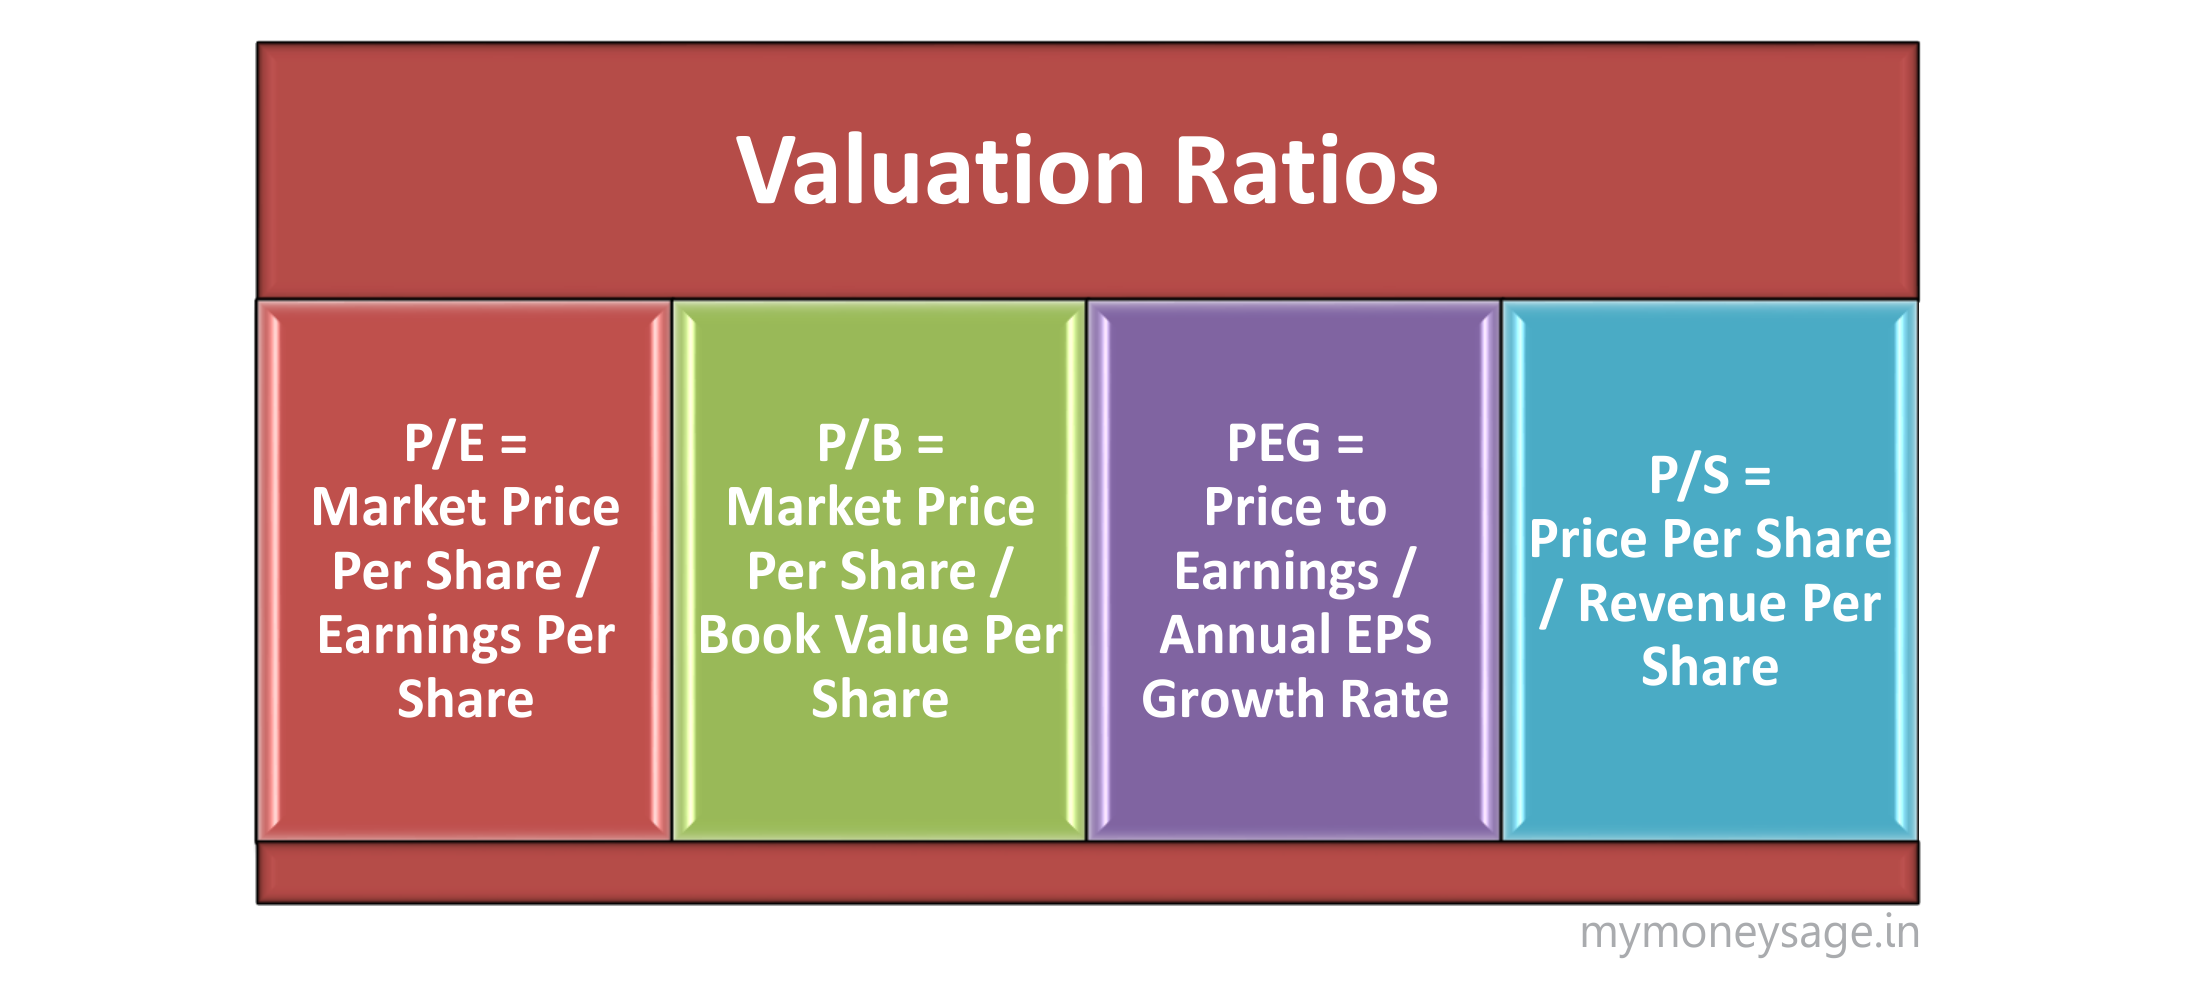 ratio analysis valuation of glaxo Analysis of financial ratios of glaxosmithkline bangladesh limited glaxosmithkline ratios analysis of gsk this is the ratio of market value to eps.